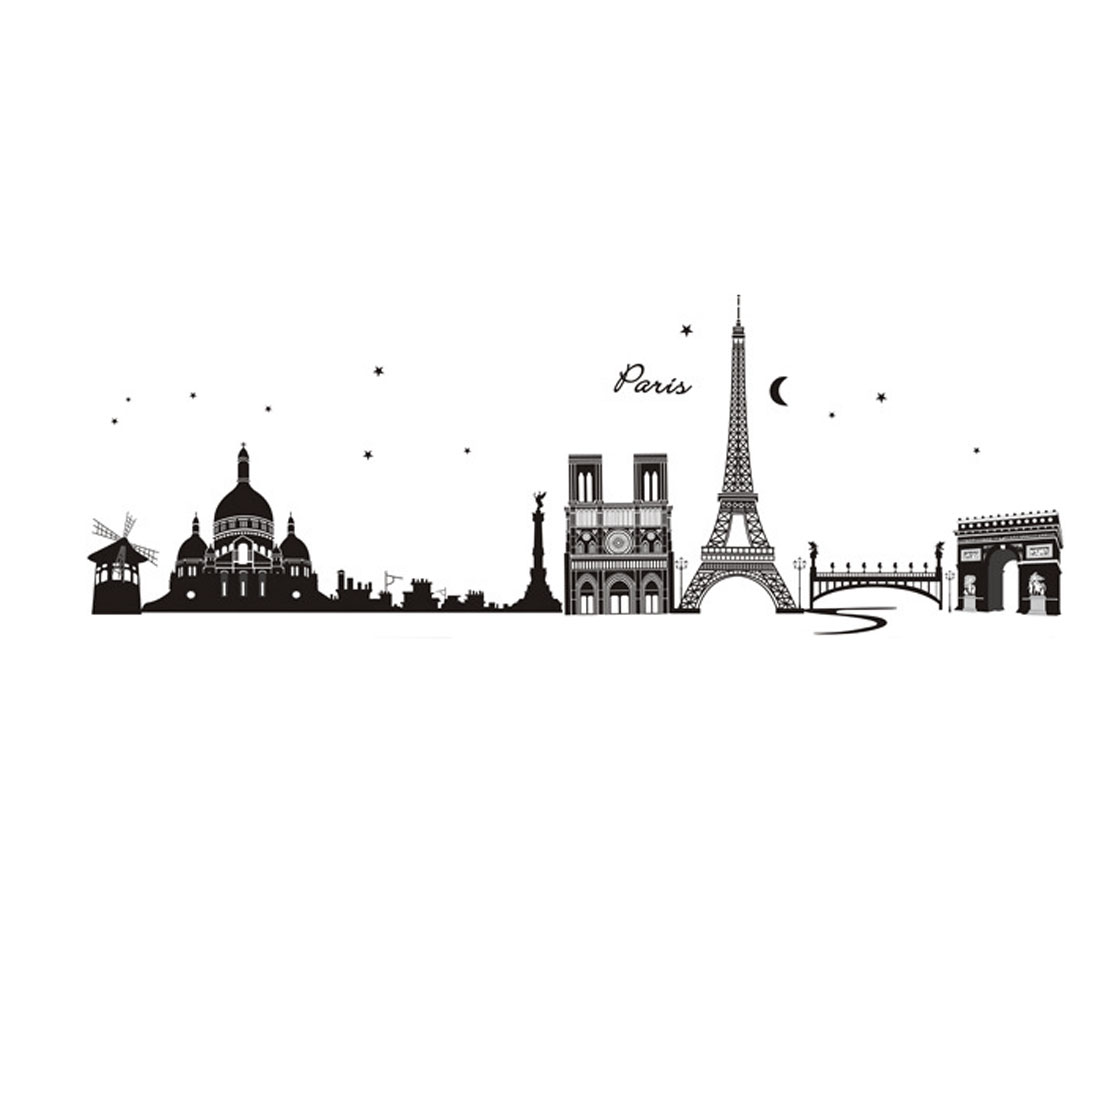 Bedroom Accent Adhesive World Landmarks Buildings Wall Sticker 60x90cm Black